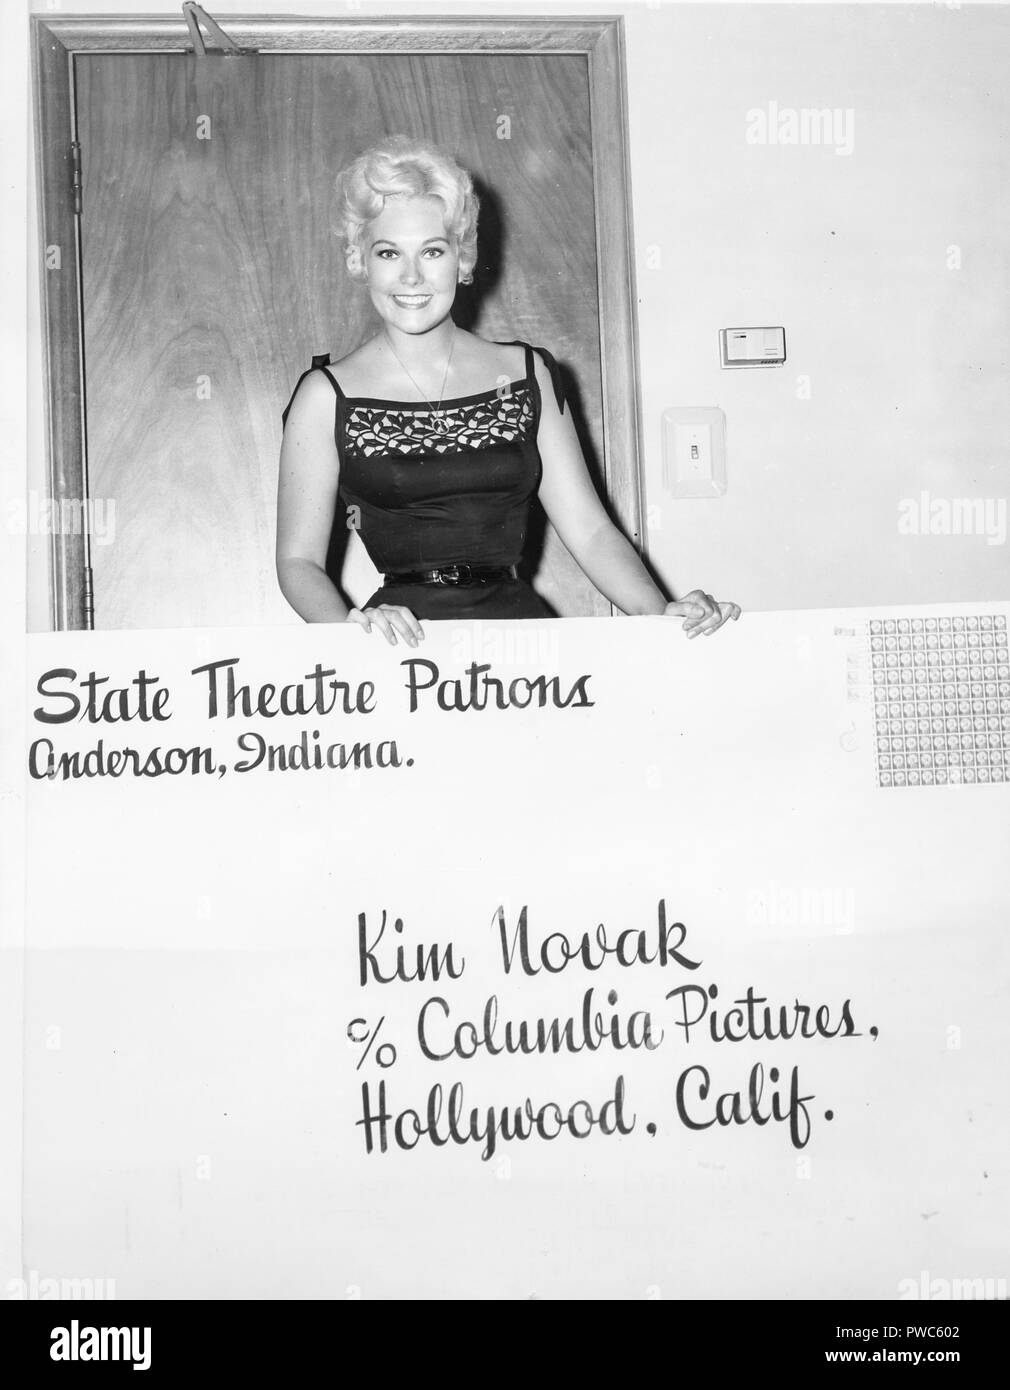 kim novak, 1956 Stock Photo